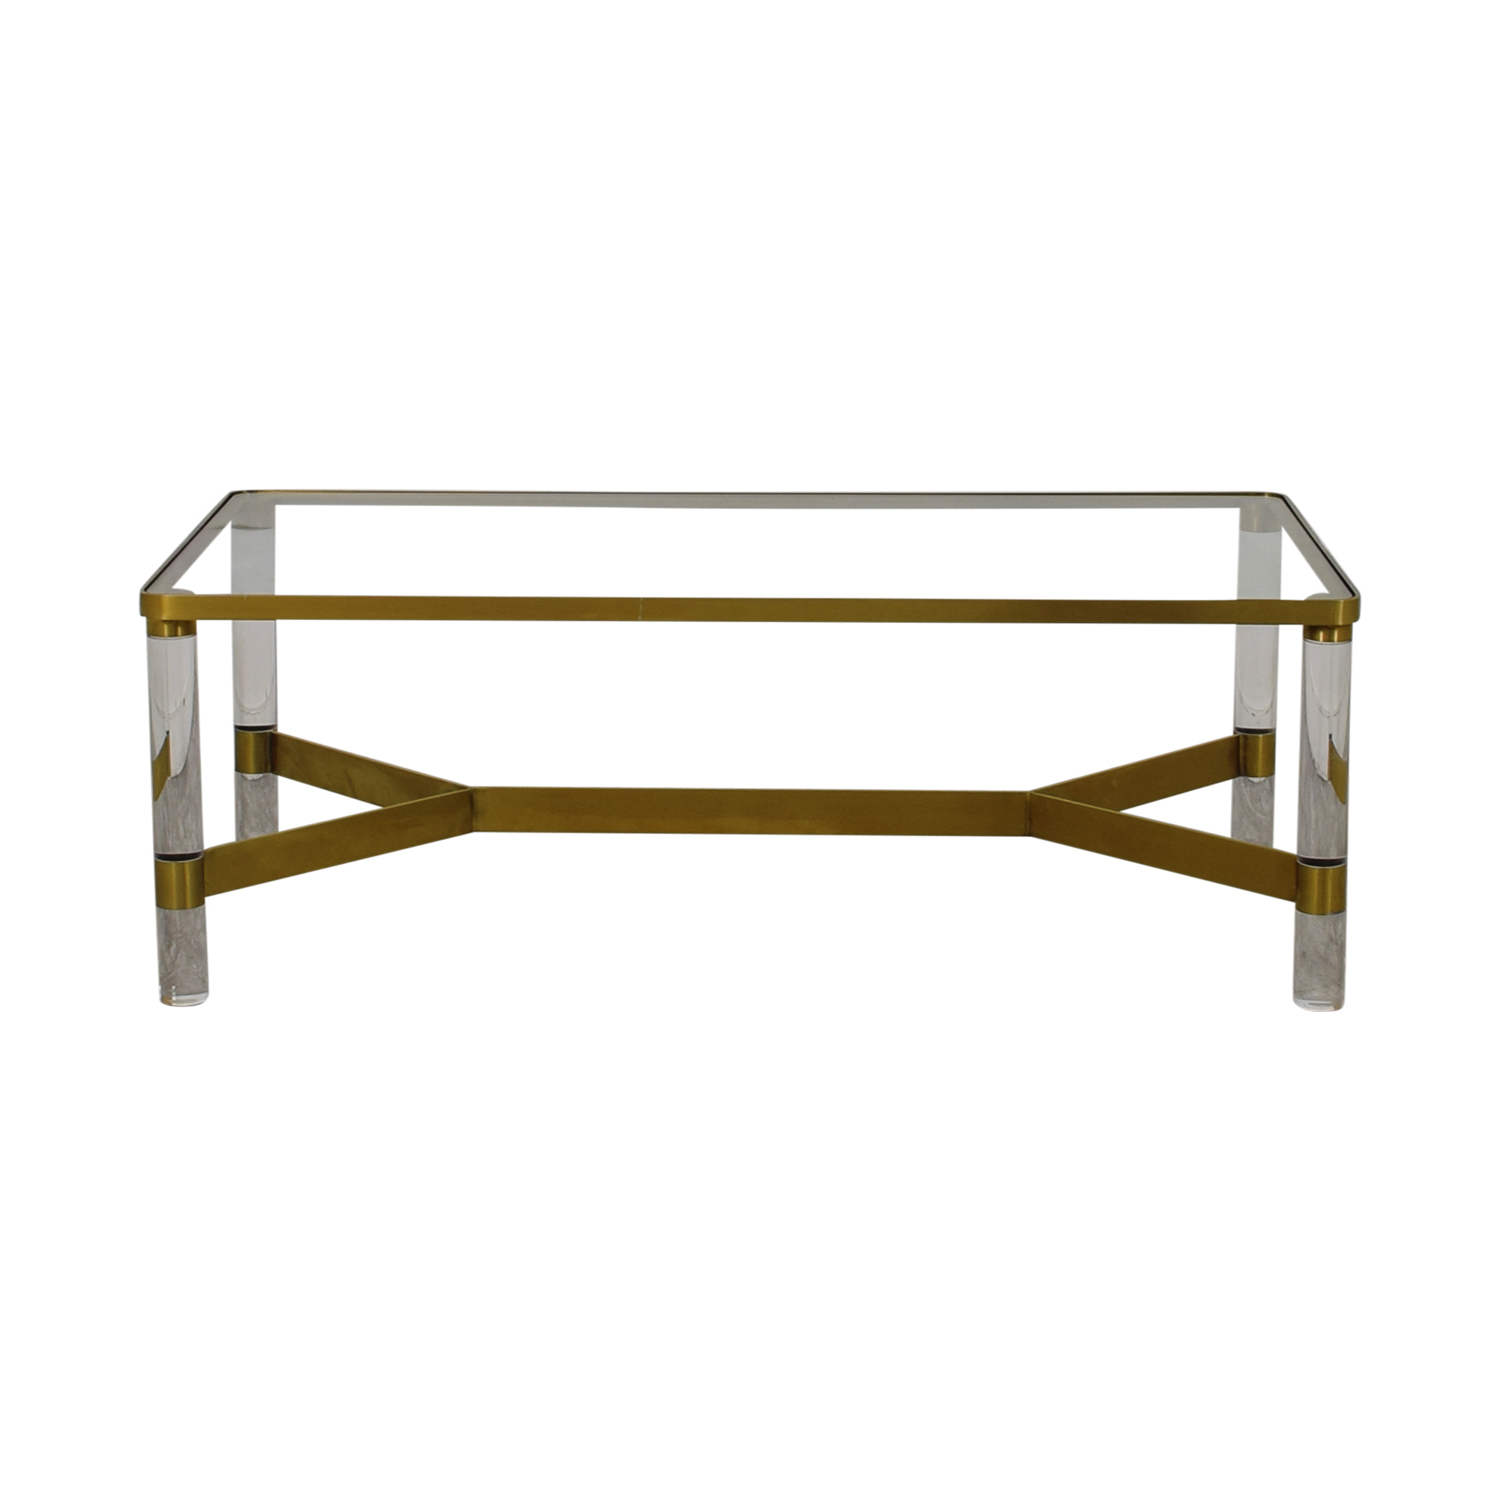 [%72% Off – Anthropologie Anthropologie Oscarine Glass Acrylic & Brass Within Well Known Acrylic & Brushed Brass Coffee Tables|acrylic & Brushed Brass Coffee Tables With Regard To Newest 72% Off – Anthropologie Anthropologie Oscarine Glass Acrylic & Brass|most Current Acrylic & Brushed Brass Coffee Tables Intended For 72% Off – Anthropologie Anthropologie Oscarine Glass Acrylic & Brass|popular 72% Off – Anthropologie Anthropologie Oscarine Glass Acrylic & Brass Pertaining To Acrylic & Brushed Brass Coffee Tables%] (View 3 of 20)